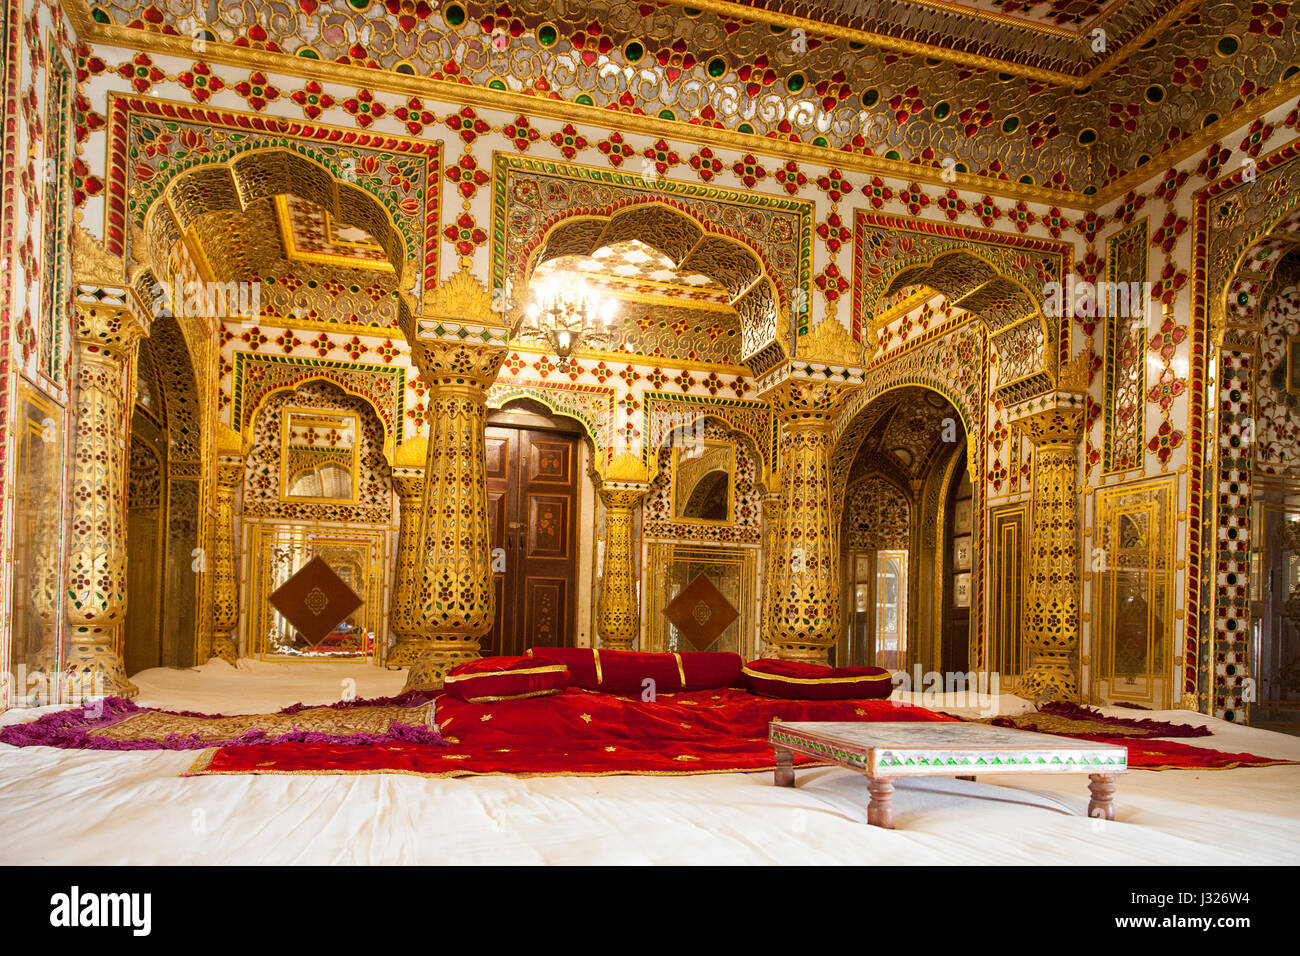 The 'Shobha Nivas' (Hall of Beauty) on the 4th floor of the Chandra Mahal at the City Palace, Jaipur. - Stock Image